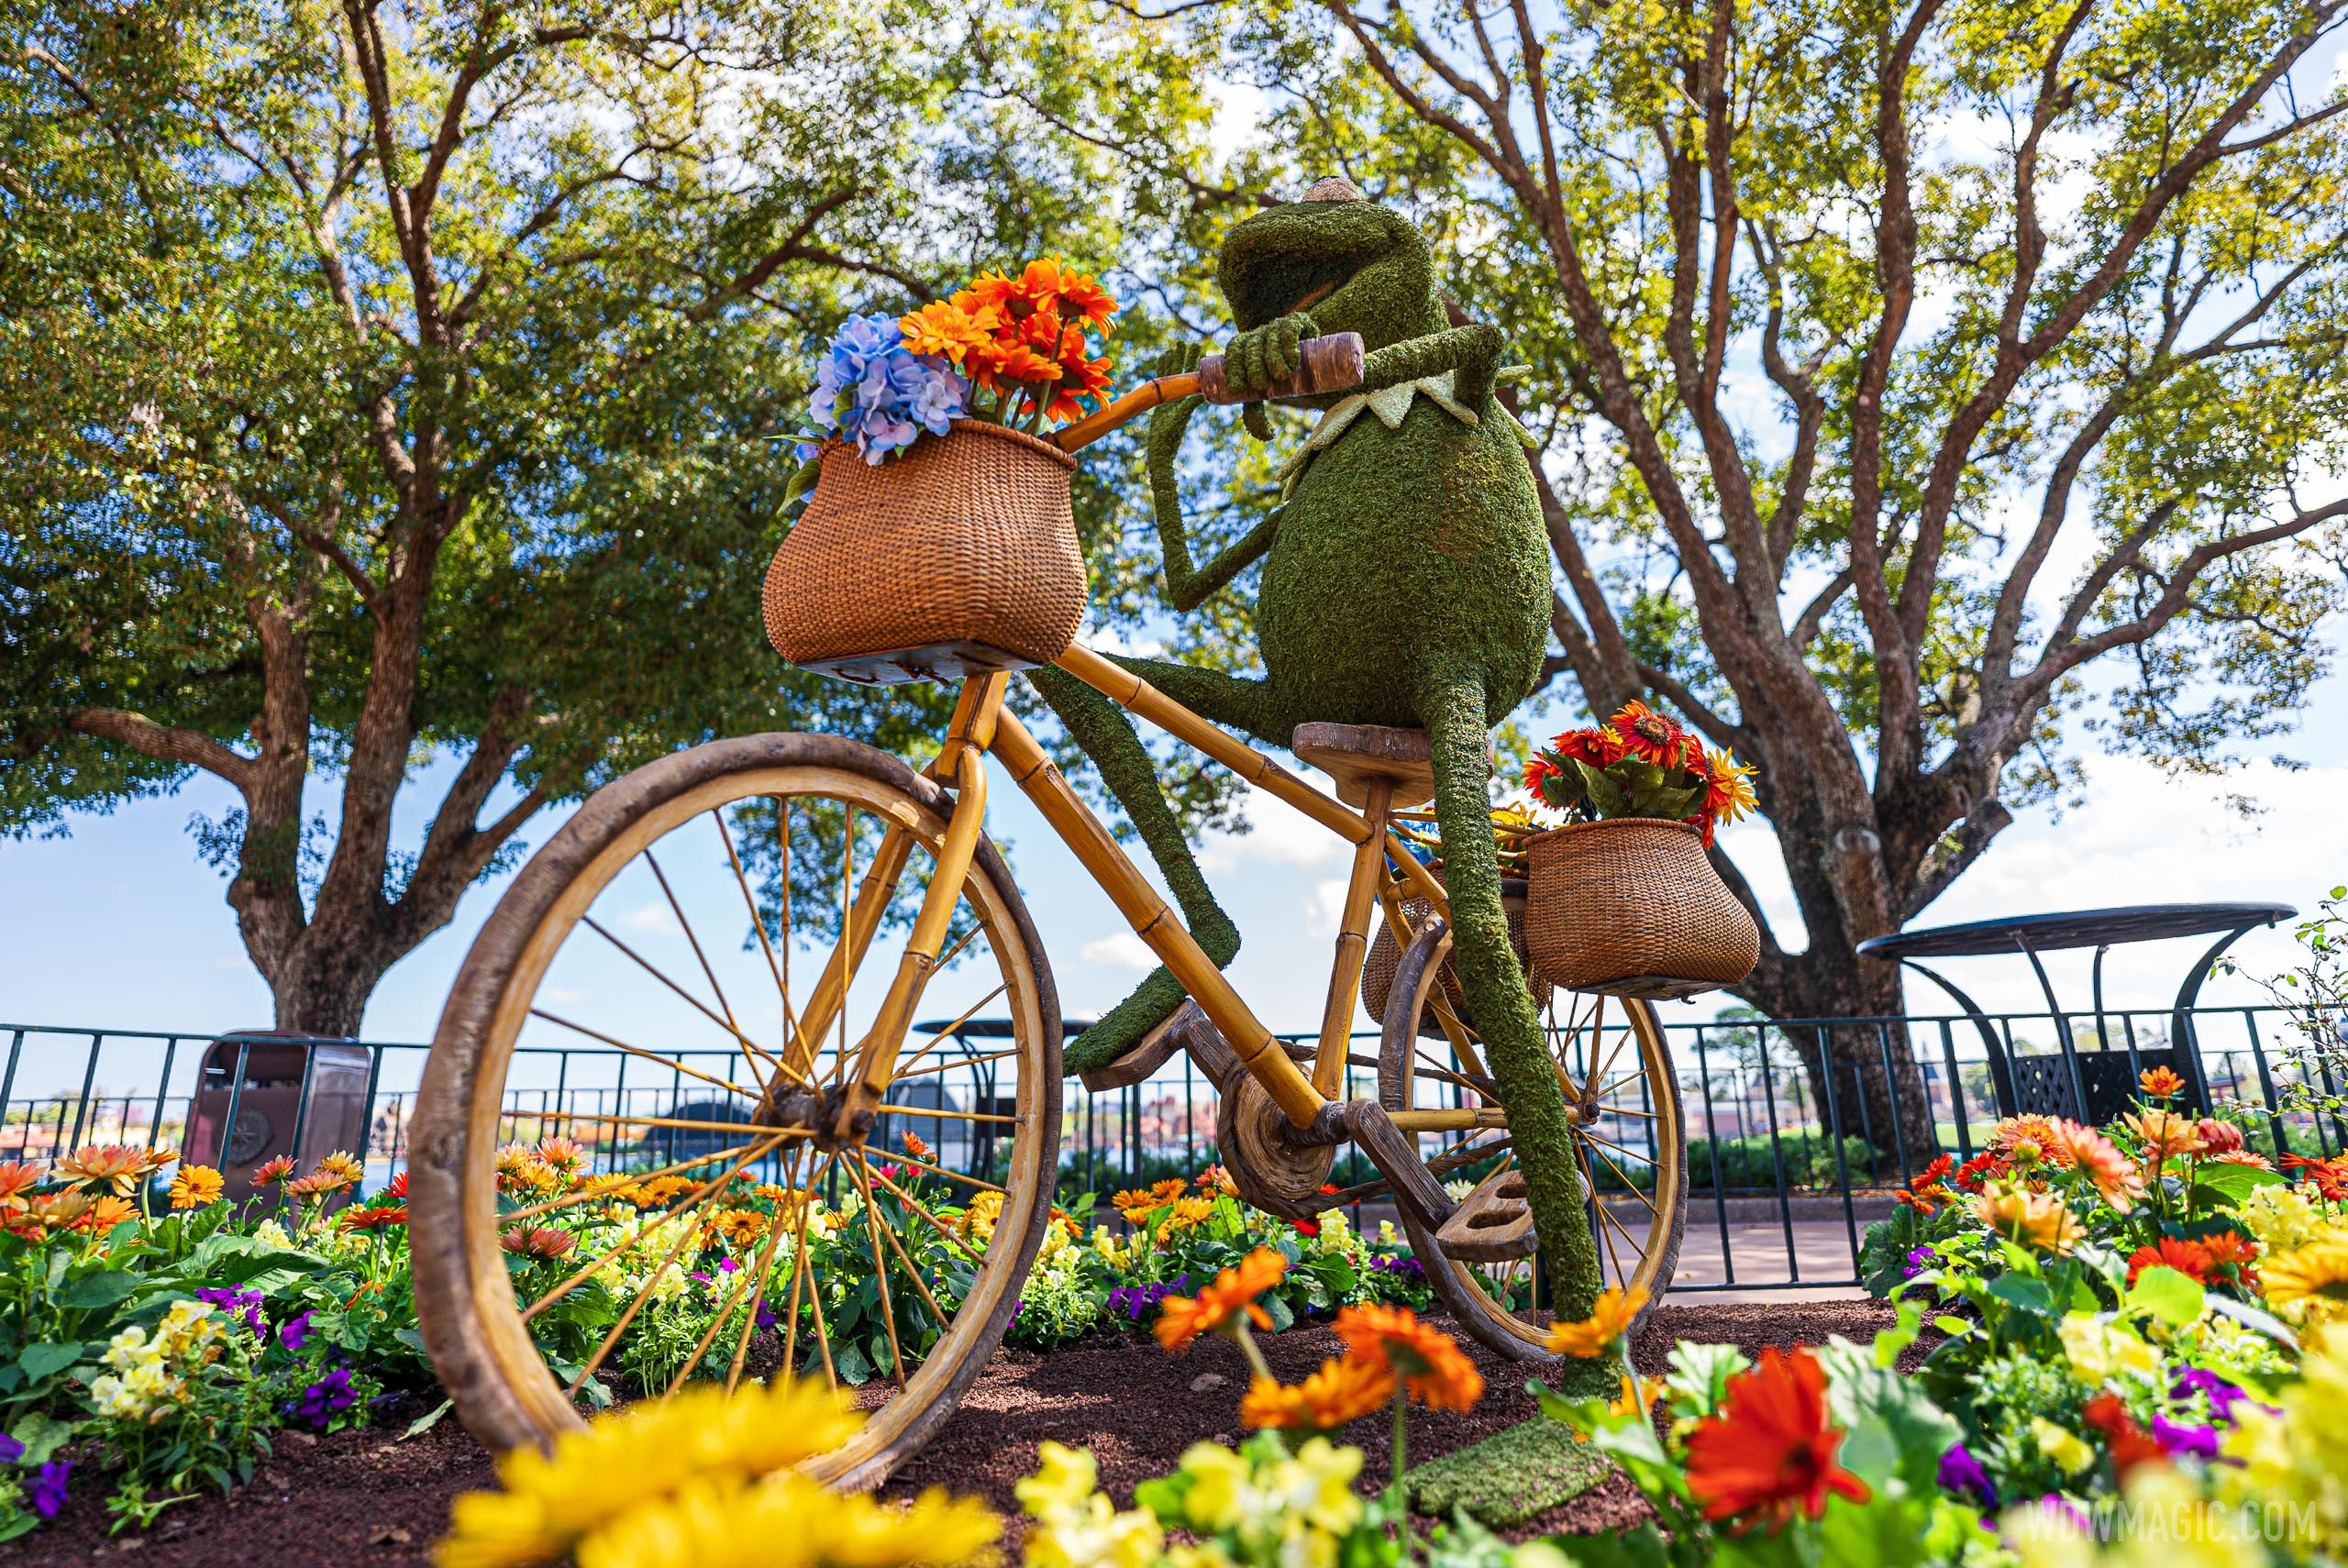 Kermit the Frog – Between United Kingdom and Canada Pavilions